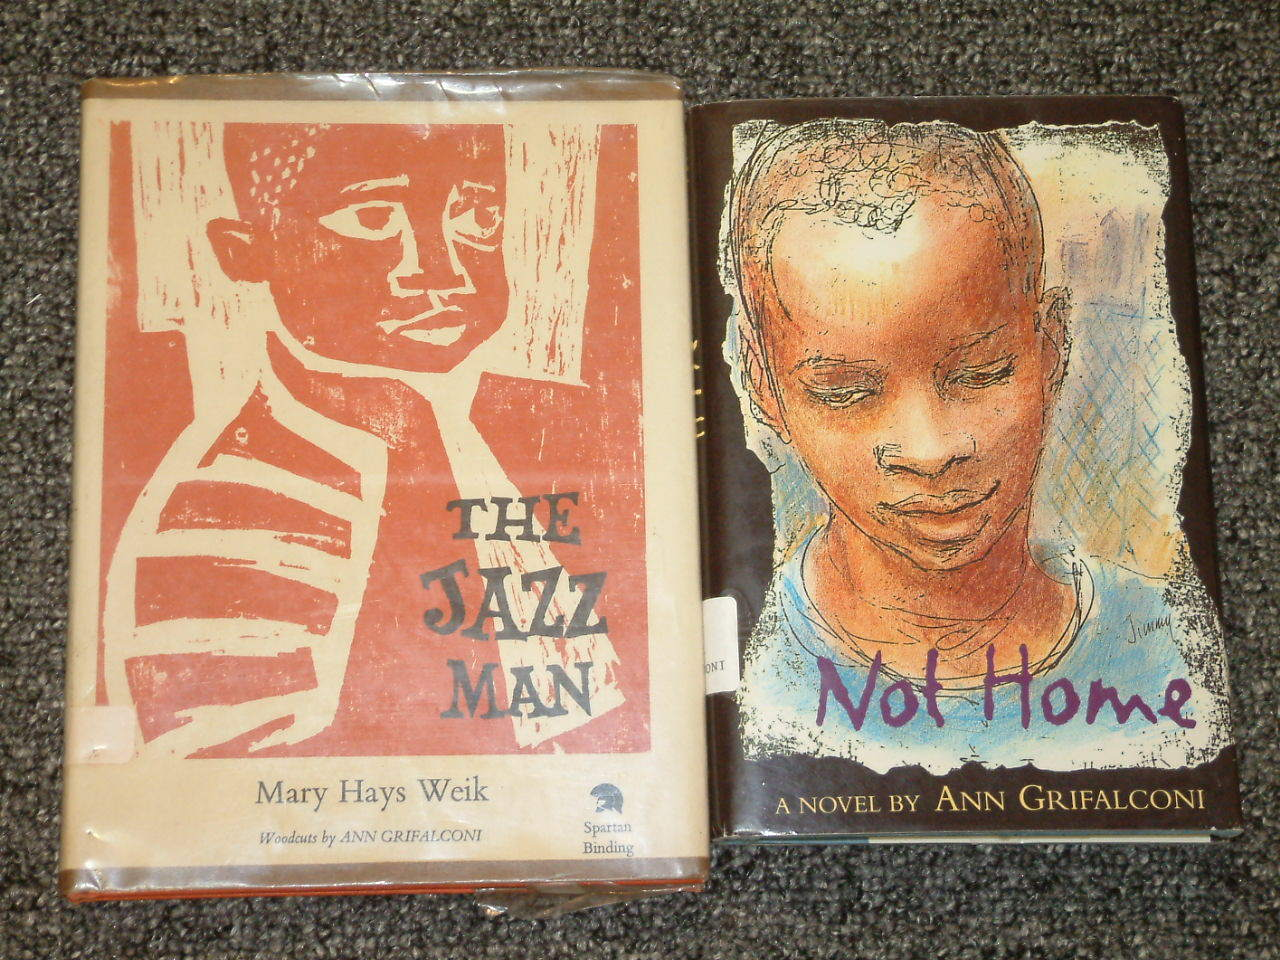 The Jazz Man by Mary Hays Weik, Not Home by Ann Grifalconi